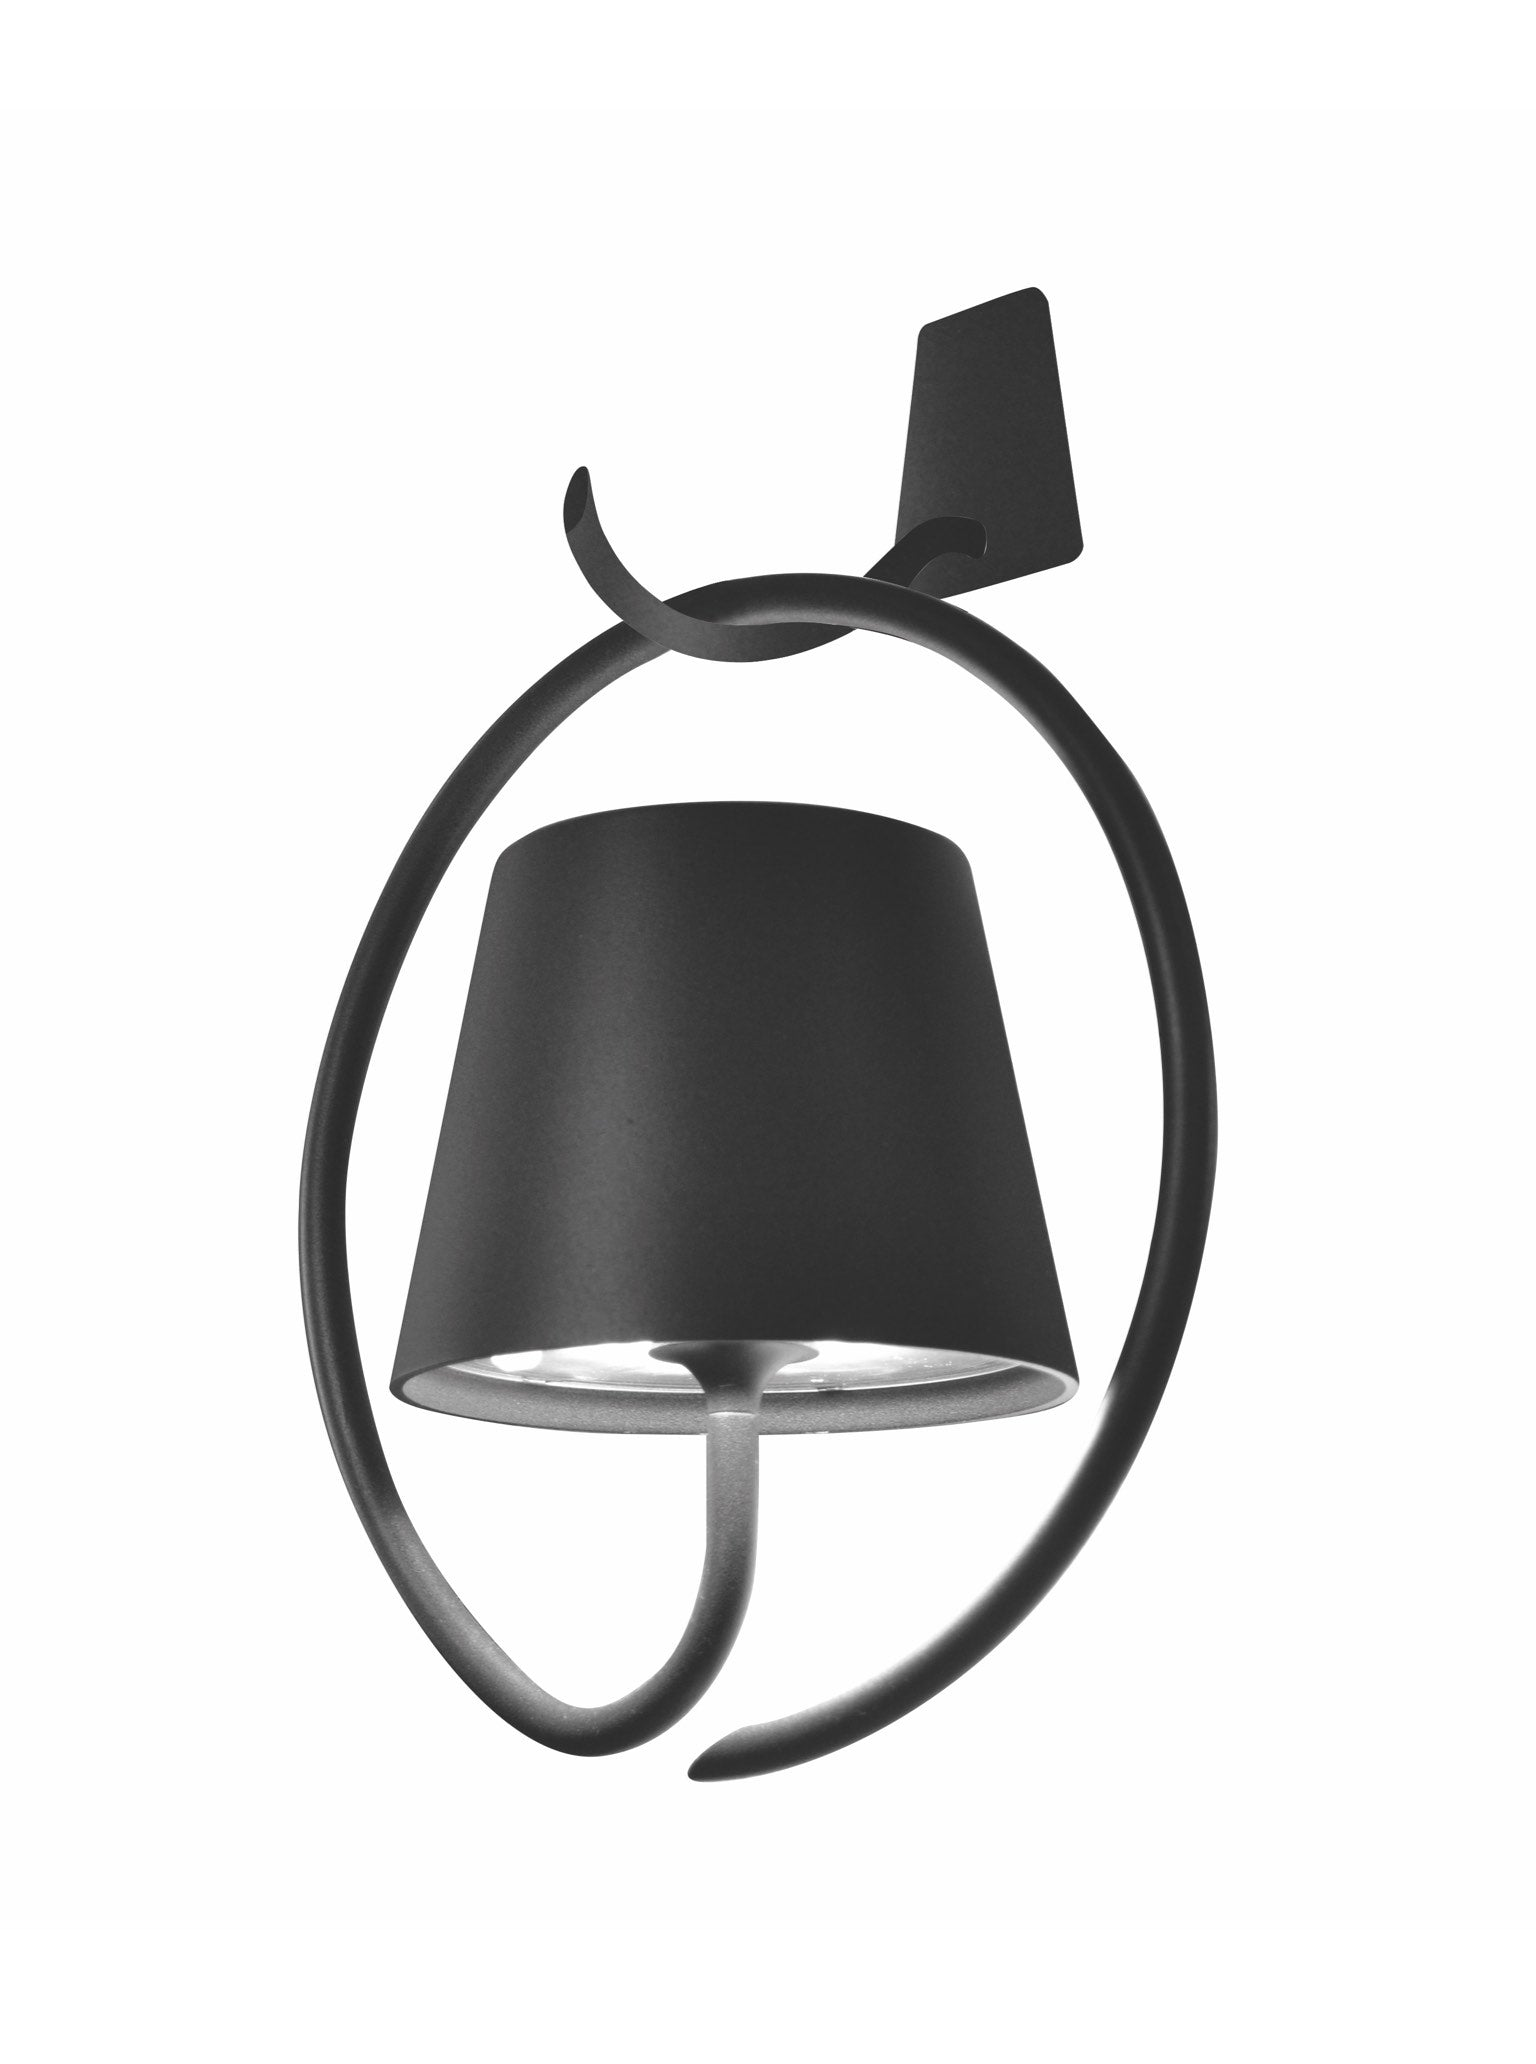 Poldina Wall Lamp w/ Bracket